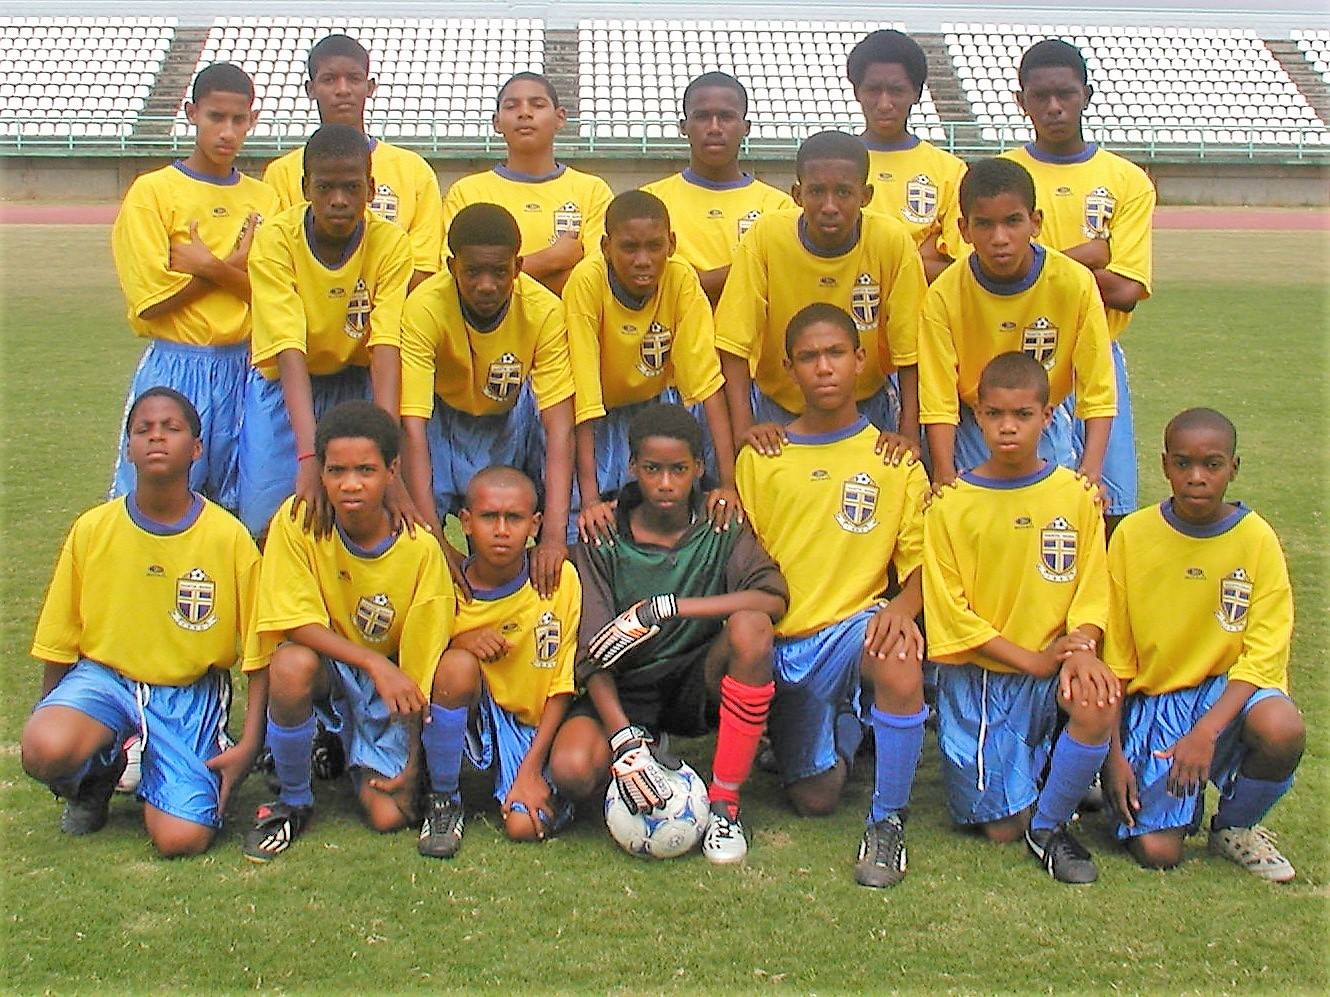 Kevon Cooper (middle row, extreme left) with FC Santa Rosa's Under-15 team in 2003.